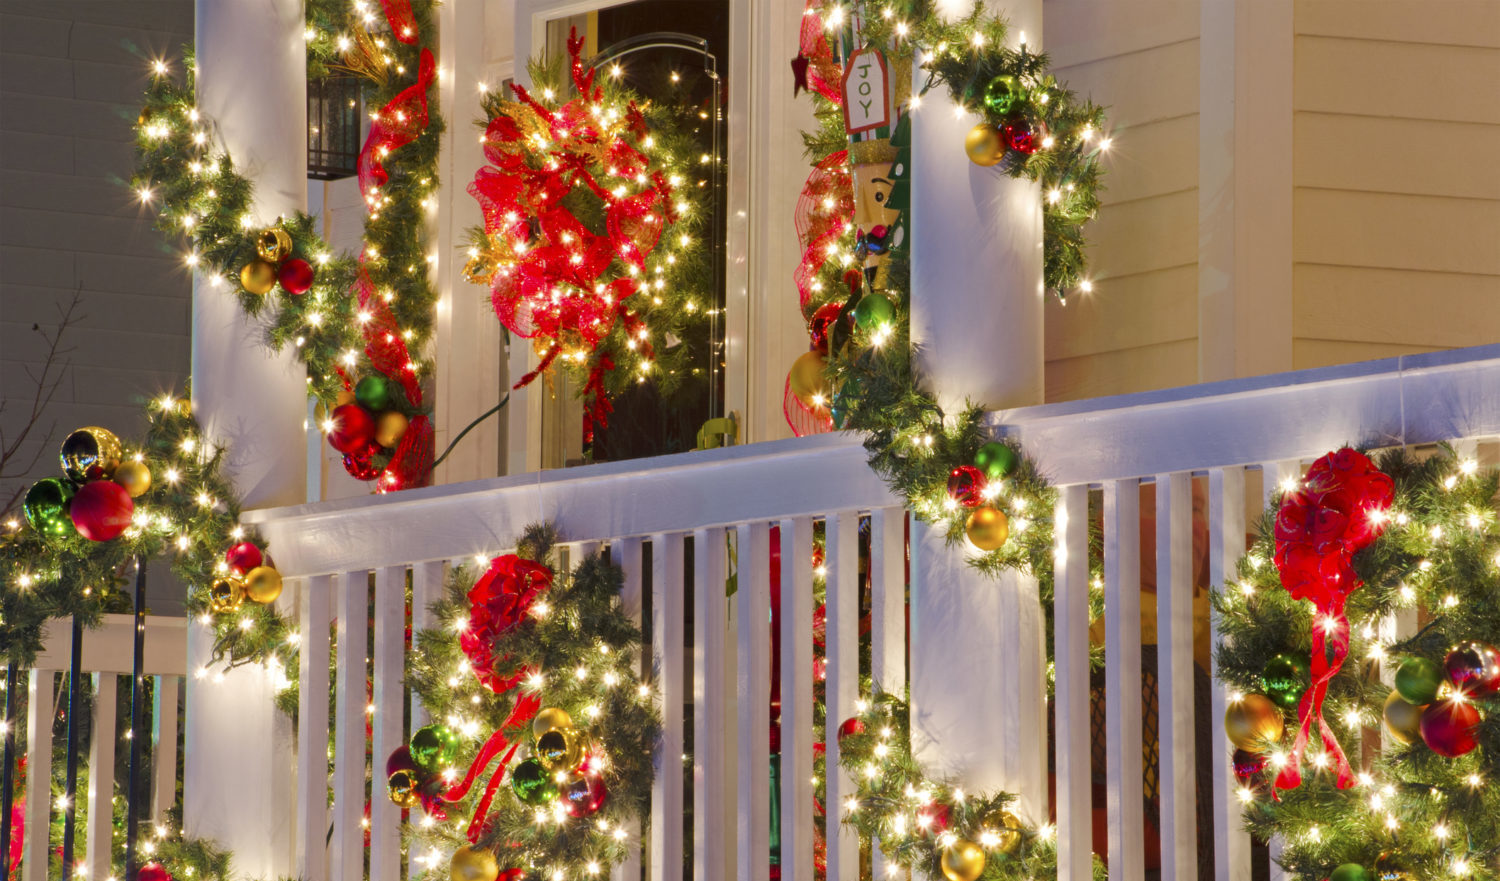 Close up detail of a Victorian-style home in a Christmas town/village that is beautifully decorated for the Holiday Season with lights, ornaments, wreaths and garlands.